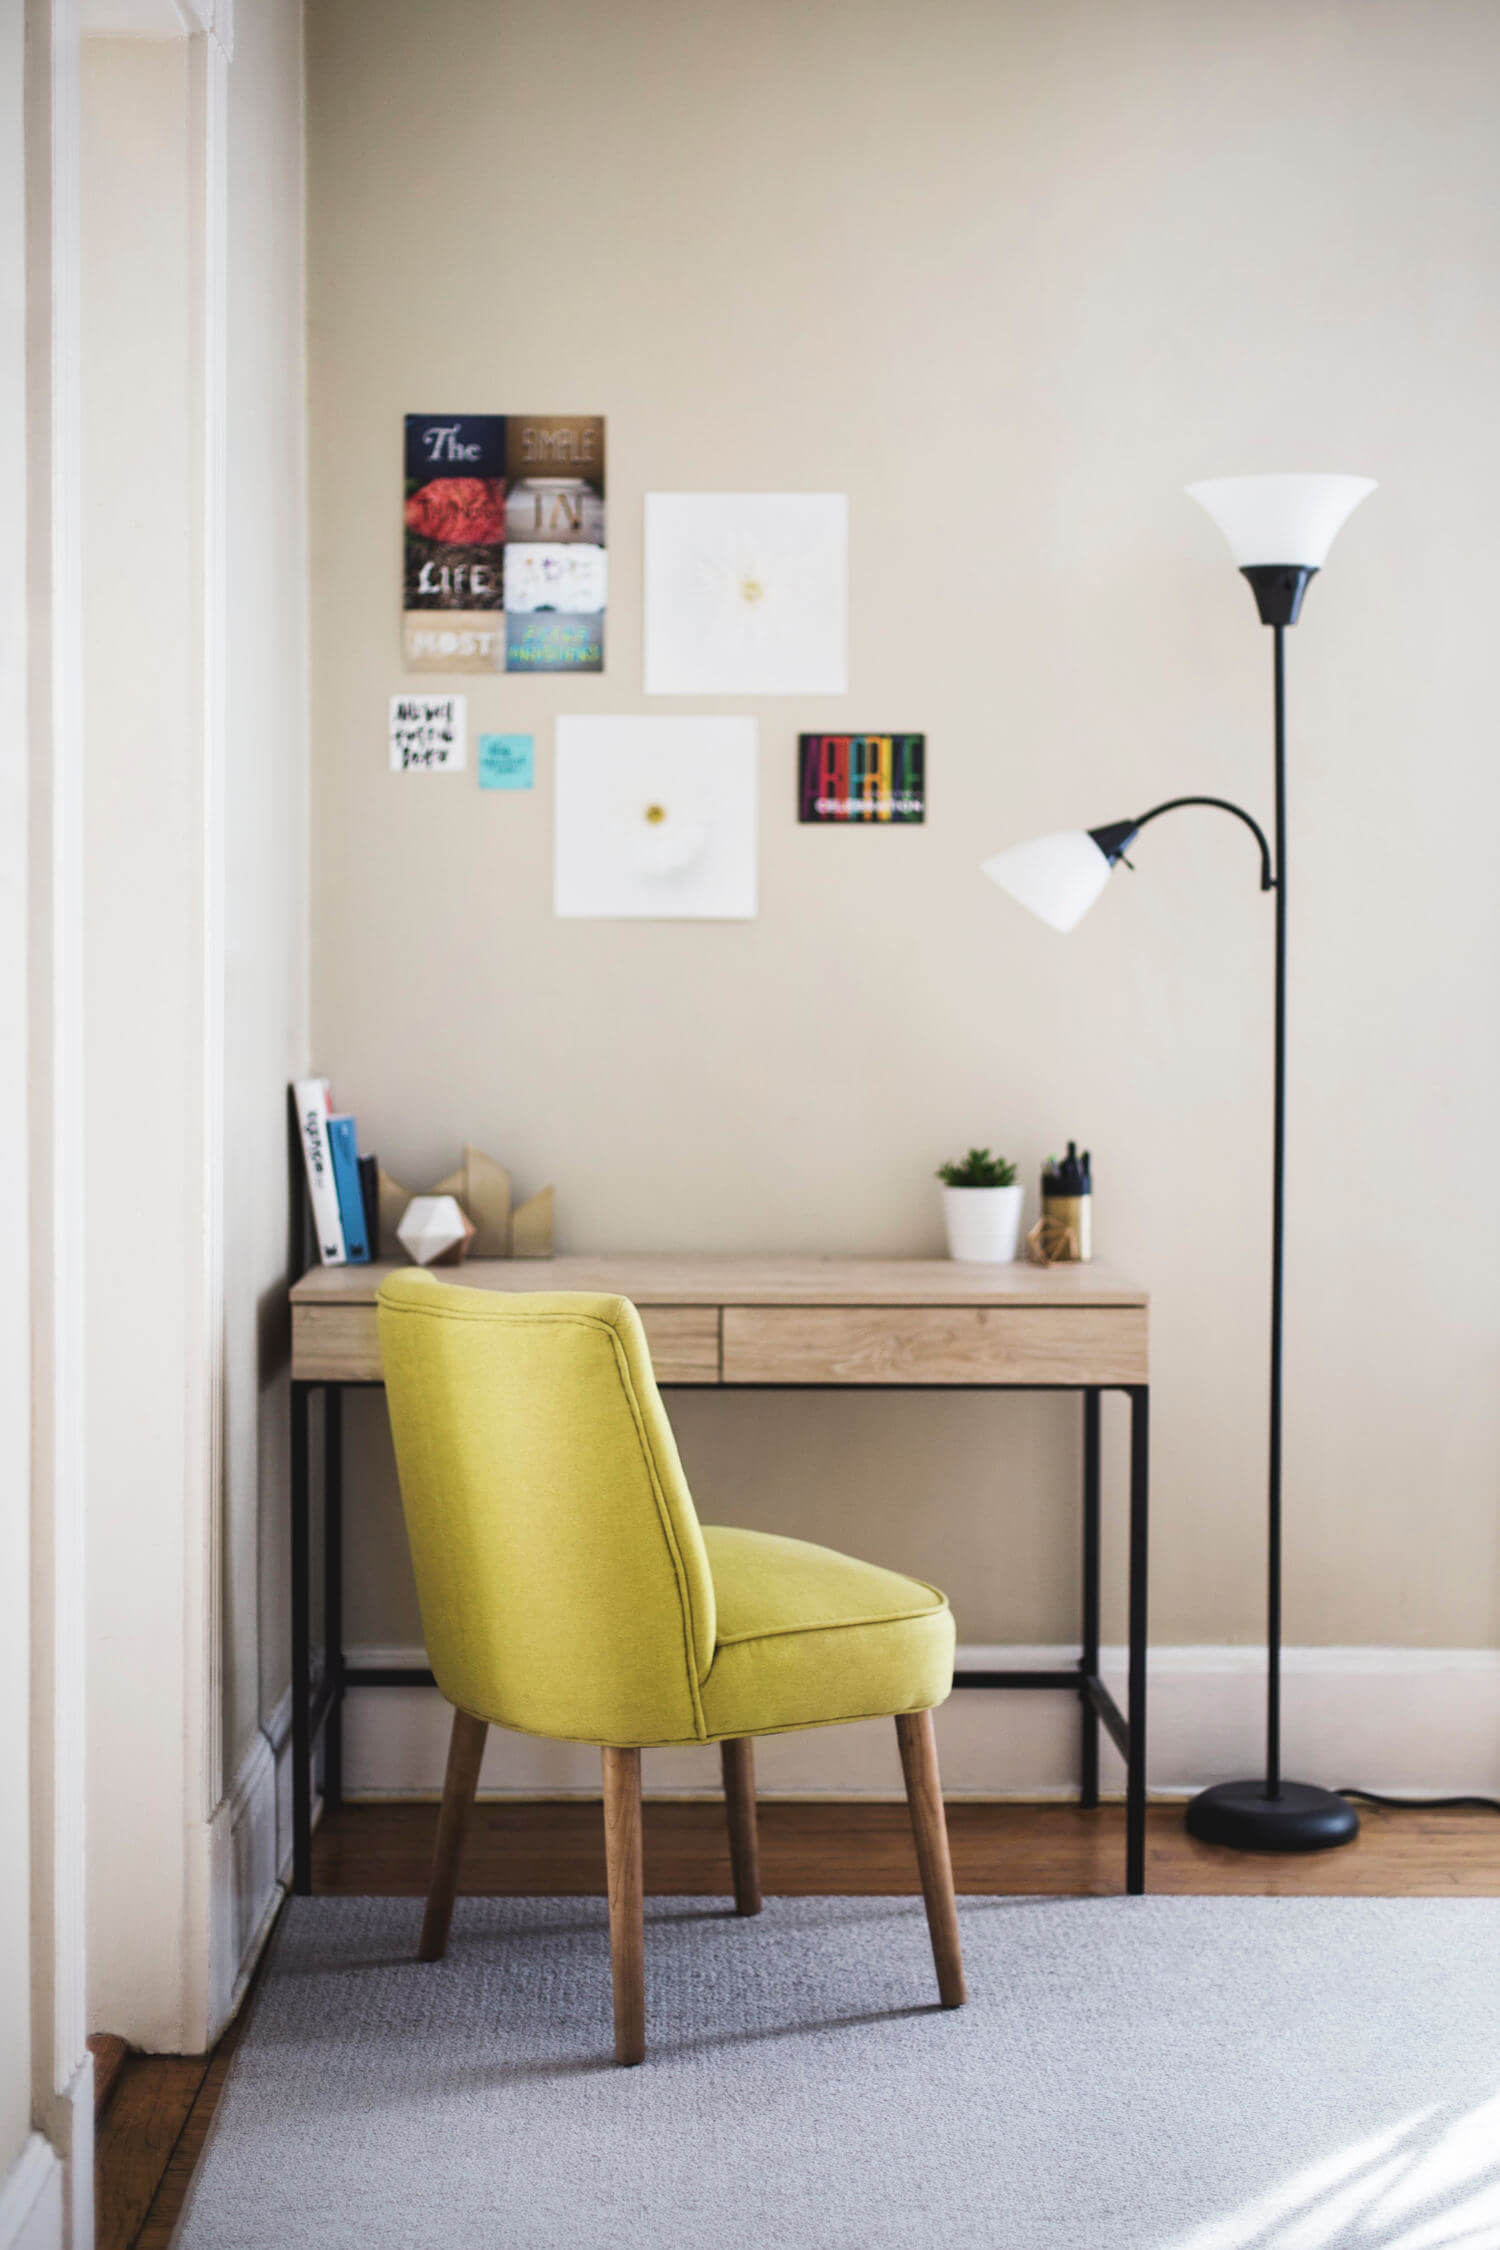 Here's how to prep a room for painting.